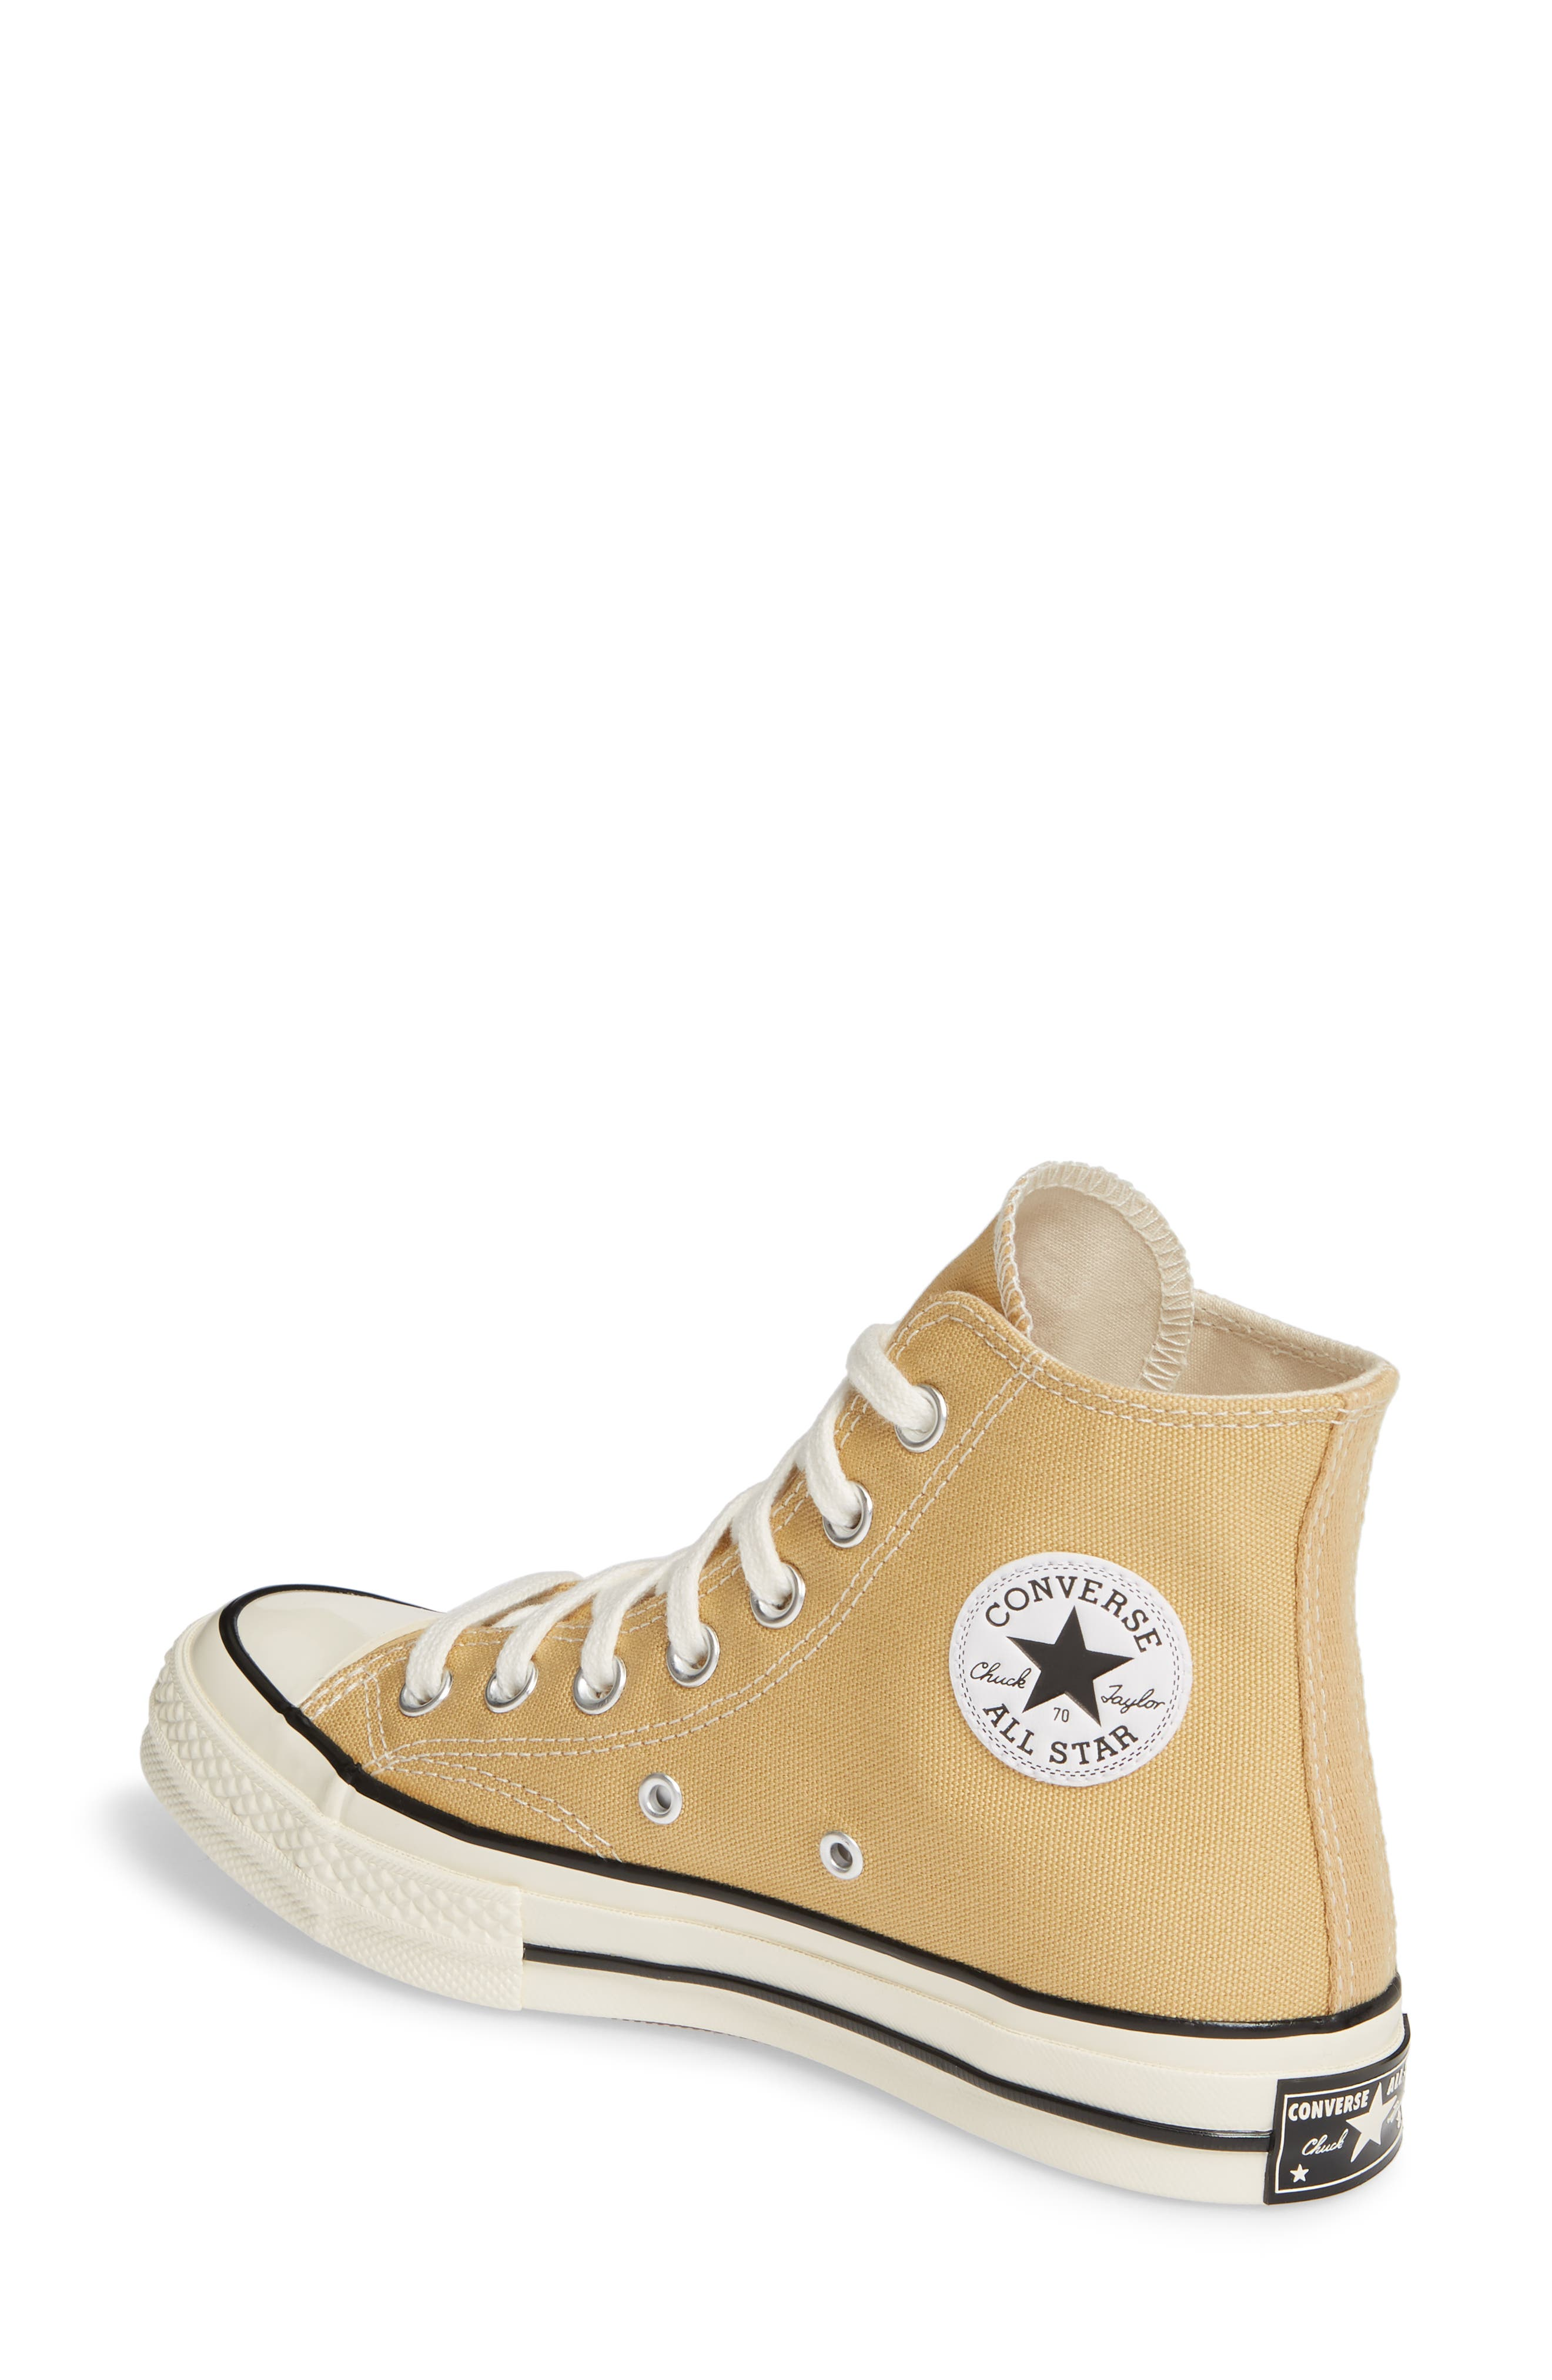 CONVERSE, Chuck Taylor<sup>®</sup> All Star<sup>®</sup> 70 High Top Sneaker, Alternate thumbnail 2, color, CLUB GOLD/ EGRET/ BLACK